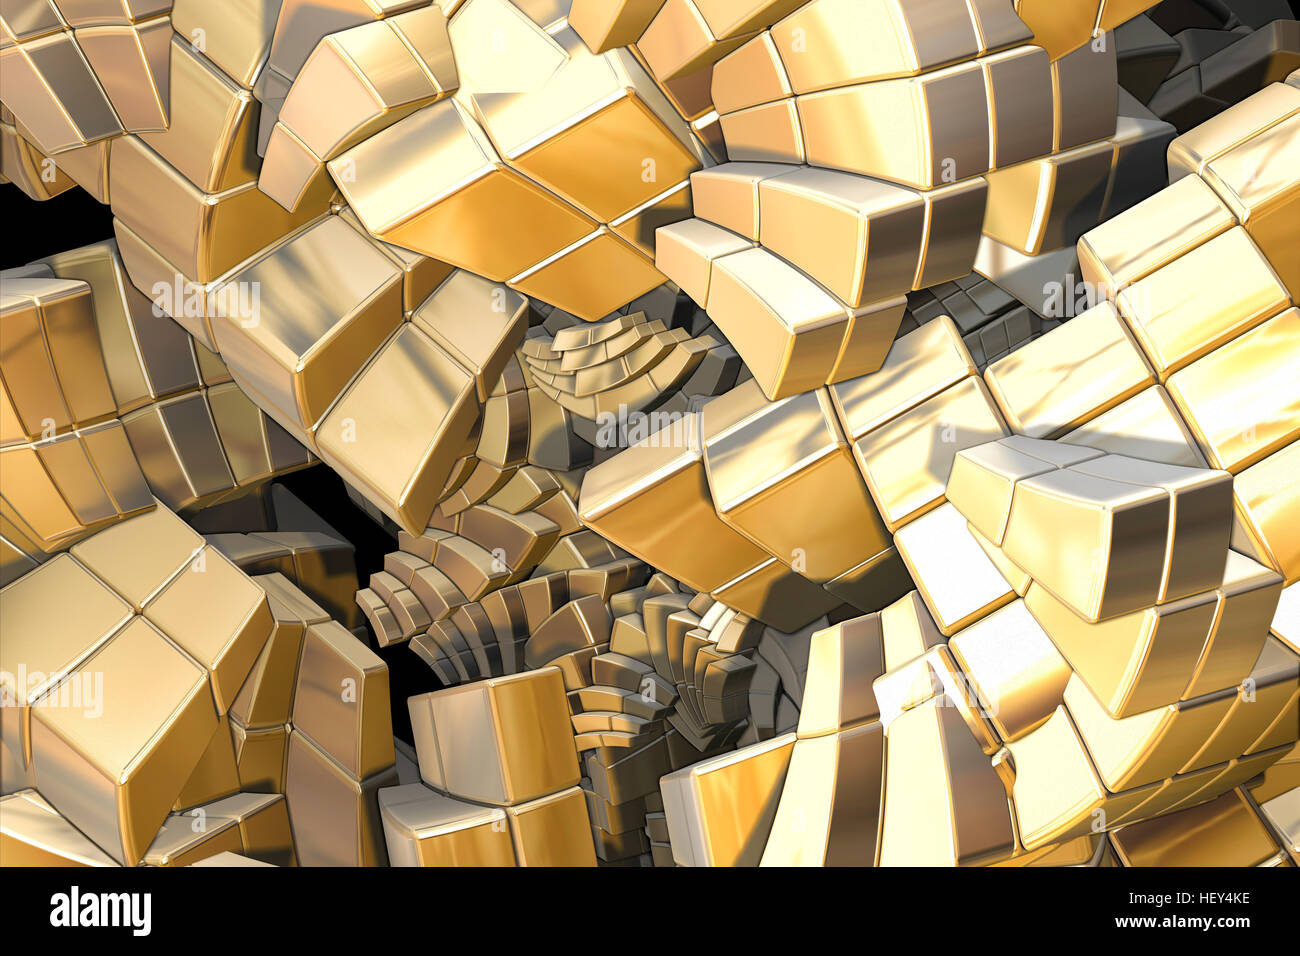 computer generated fractal golden stairs - Stock Image